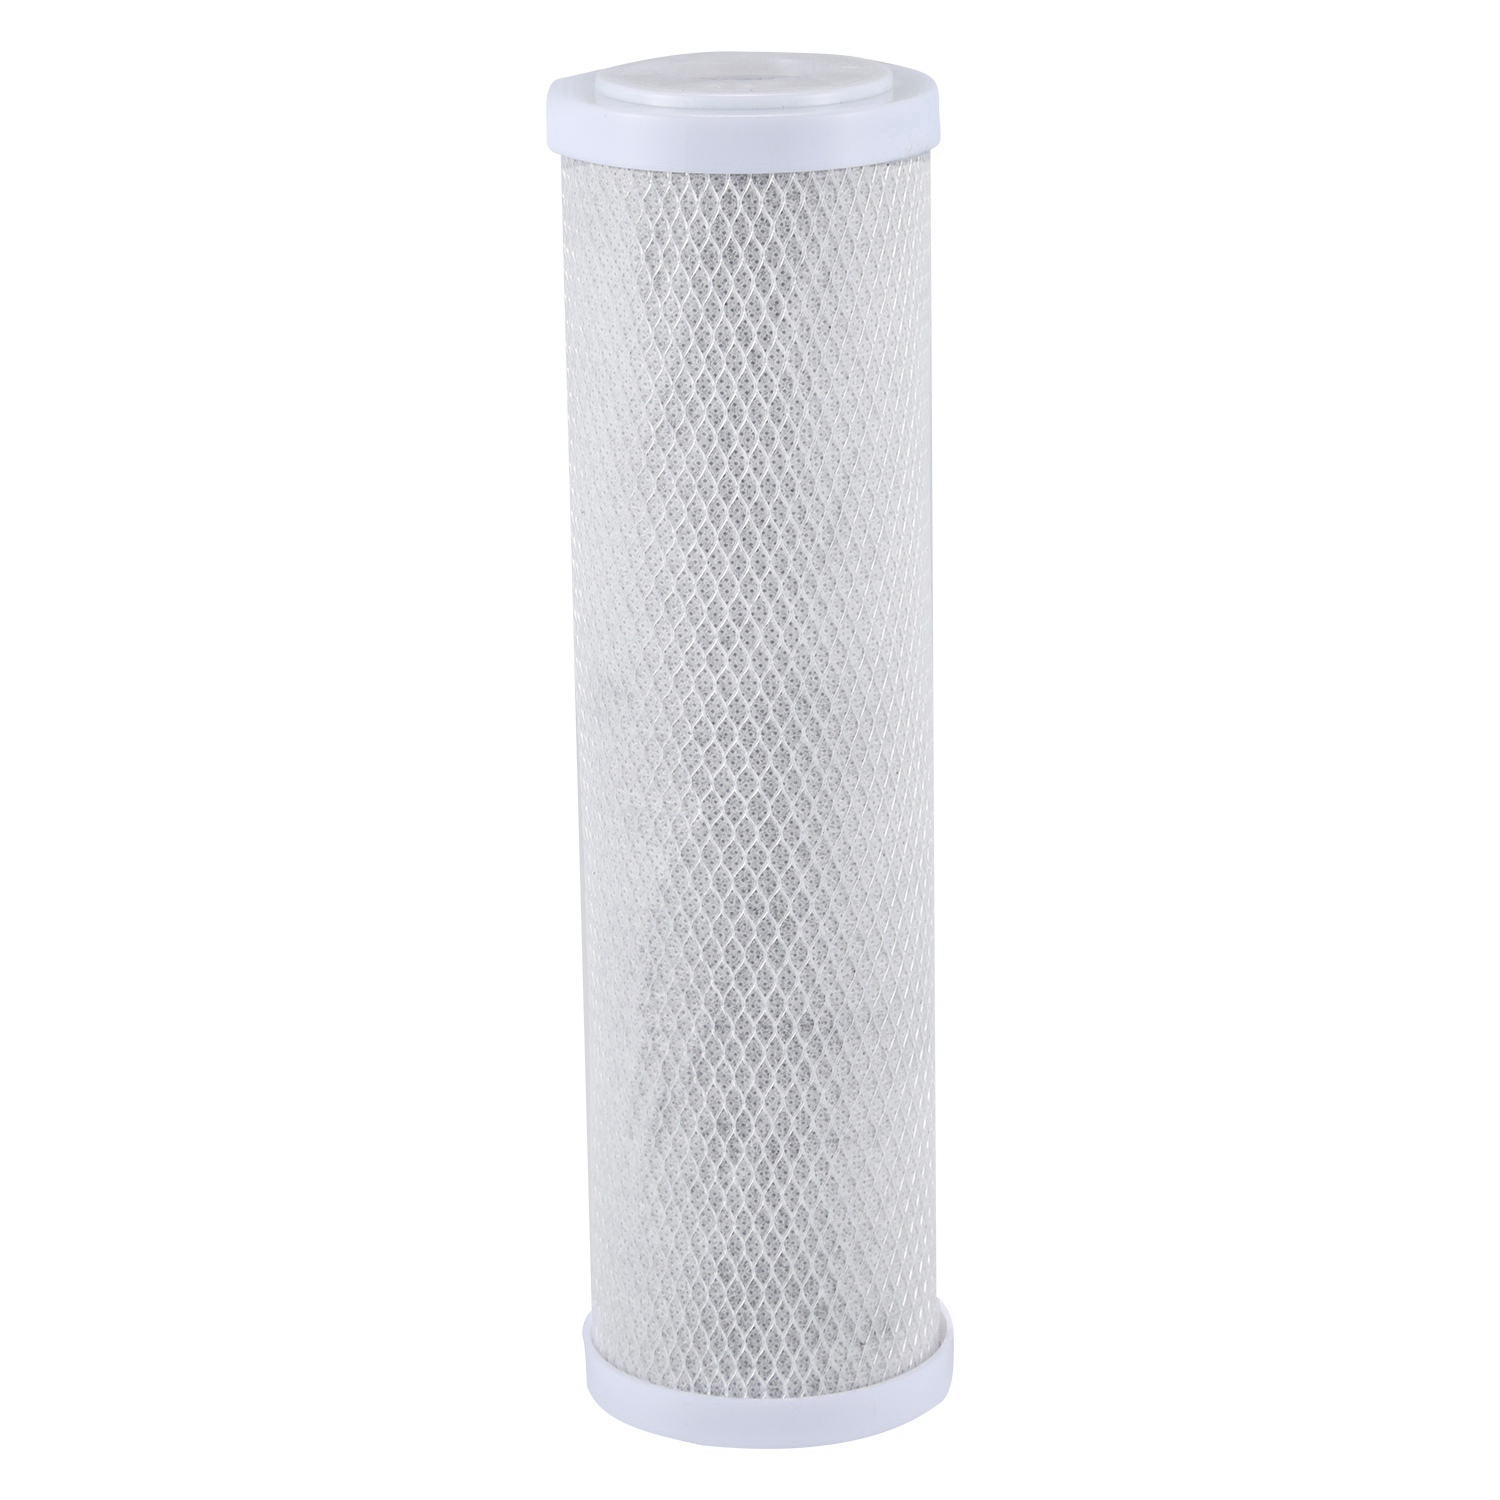 Water Filter Parts 3PCS universal 10-inch household water purifier carbon block filter replace CTO water purifier filter